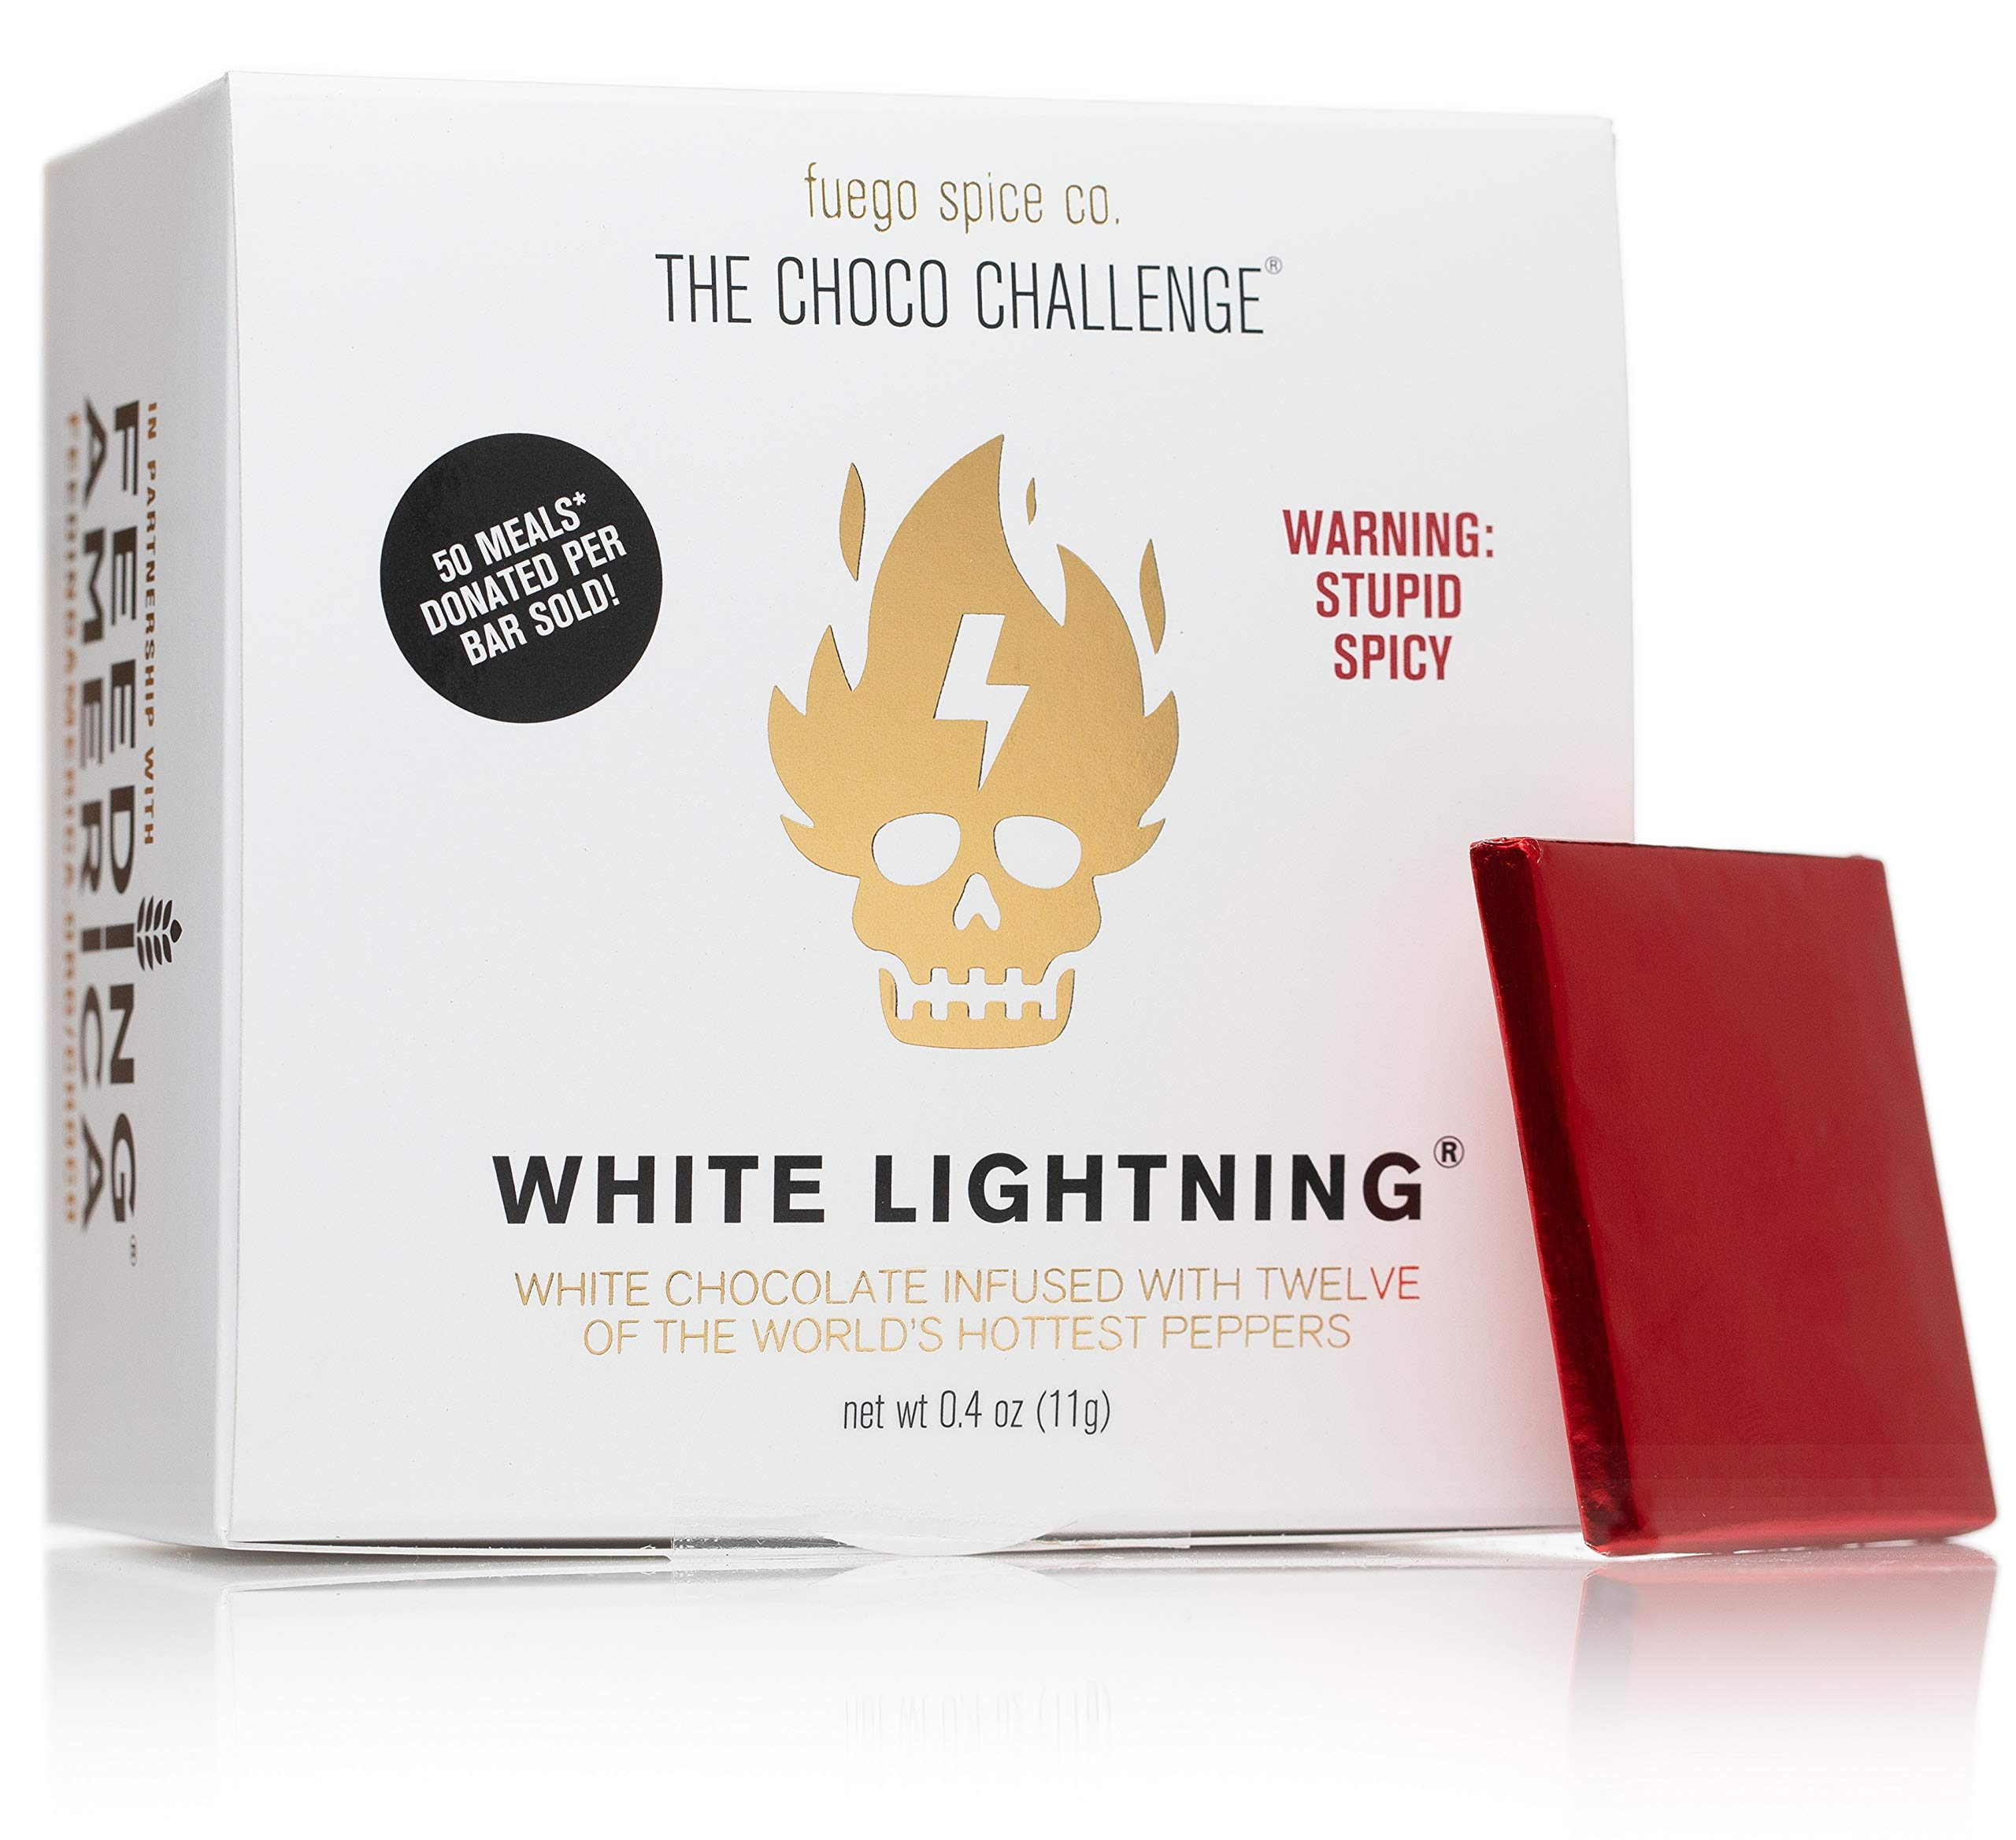 The Choco Challenge 2.0 - White Lightning by FUEGO SPICE CO. White Chocolate with World's Hottest Peppers (1 Bar) 50 Meals Donated per Bar Sold